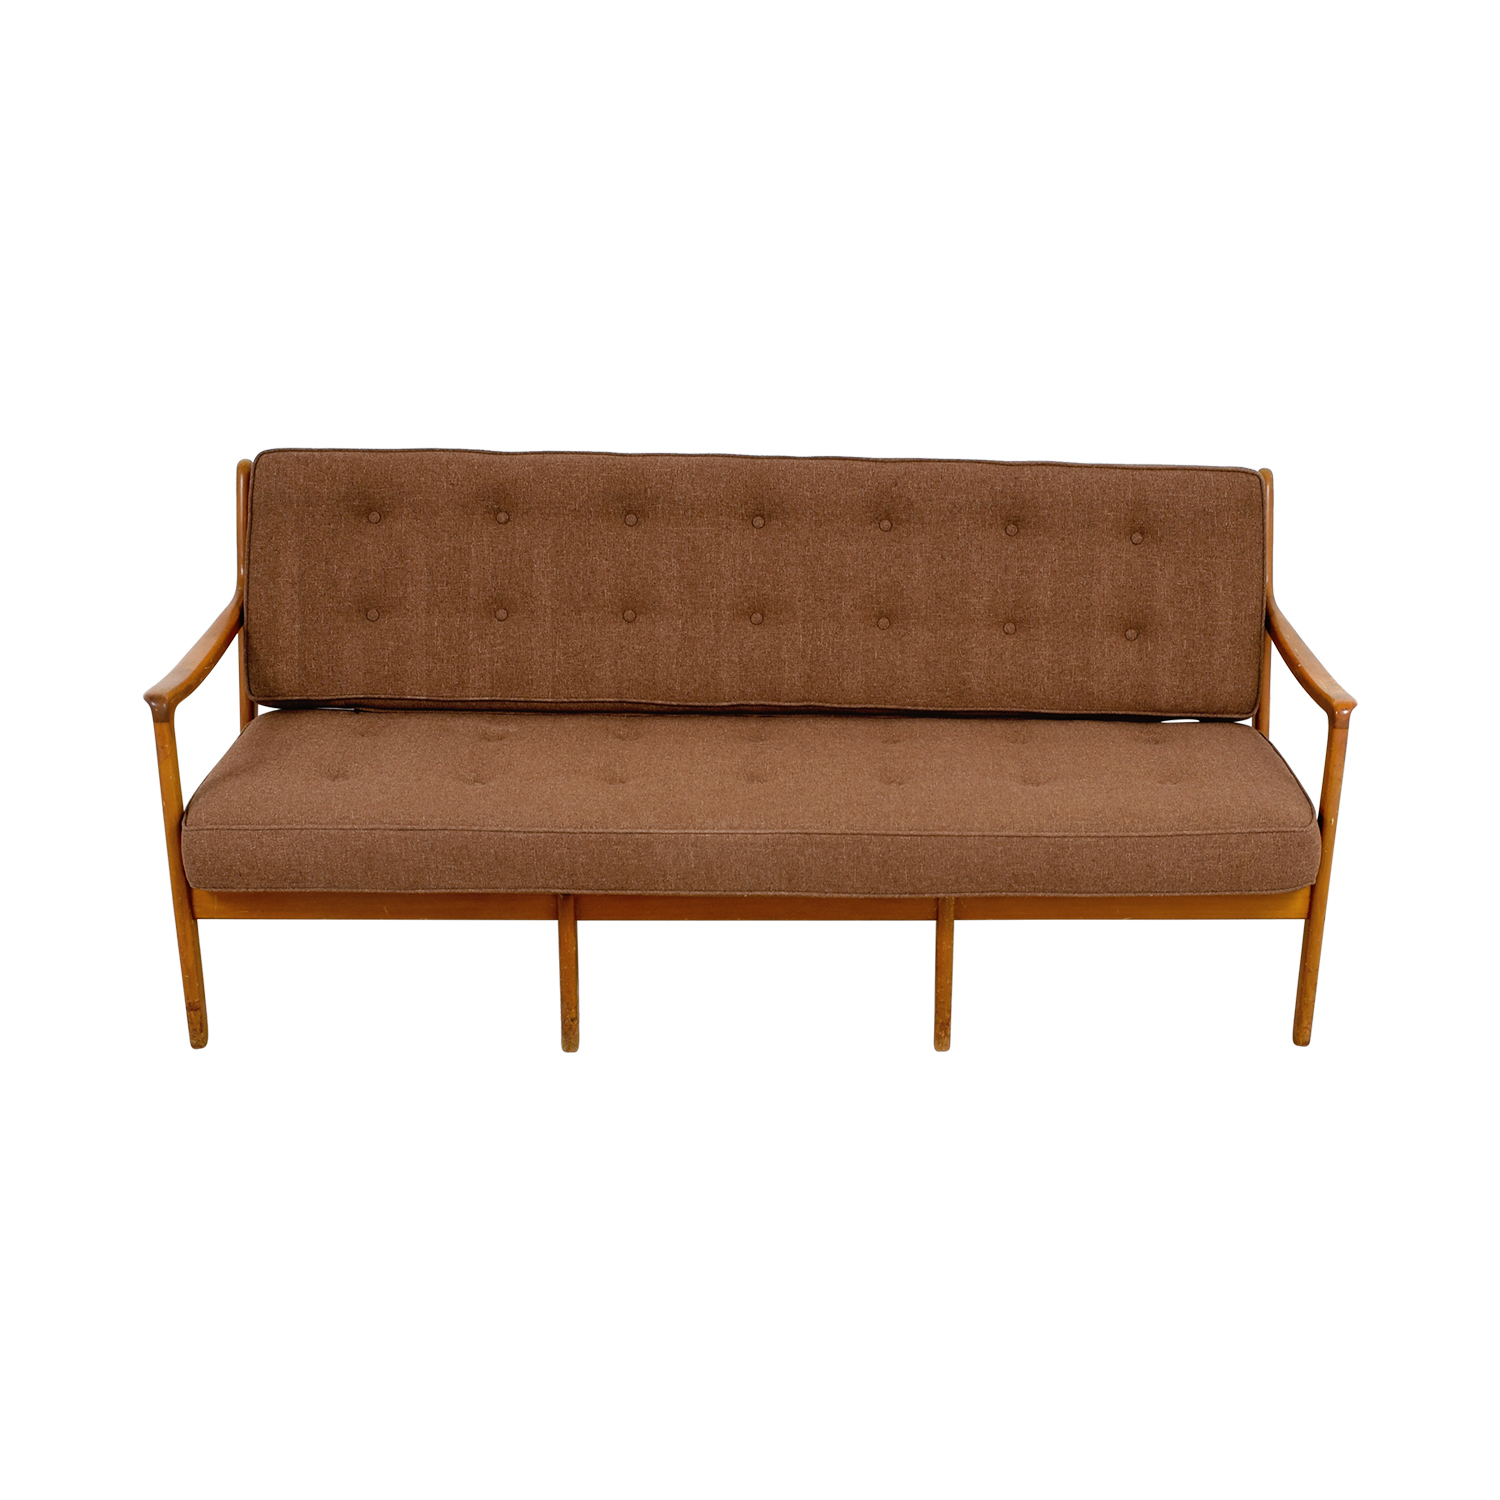 John Stuart Inc John Stuart Inc Mid-Century Danish Teak Brown Tufted Sofa brown